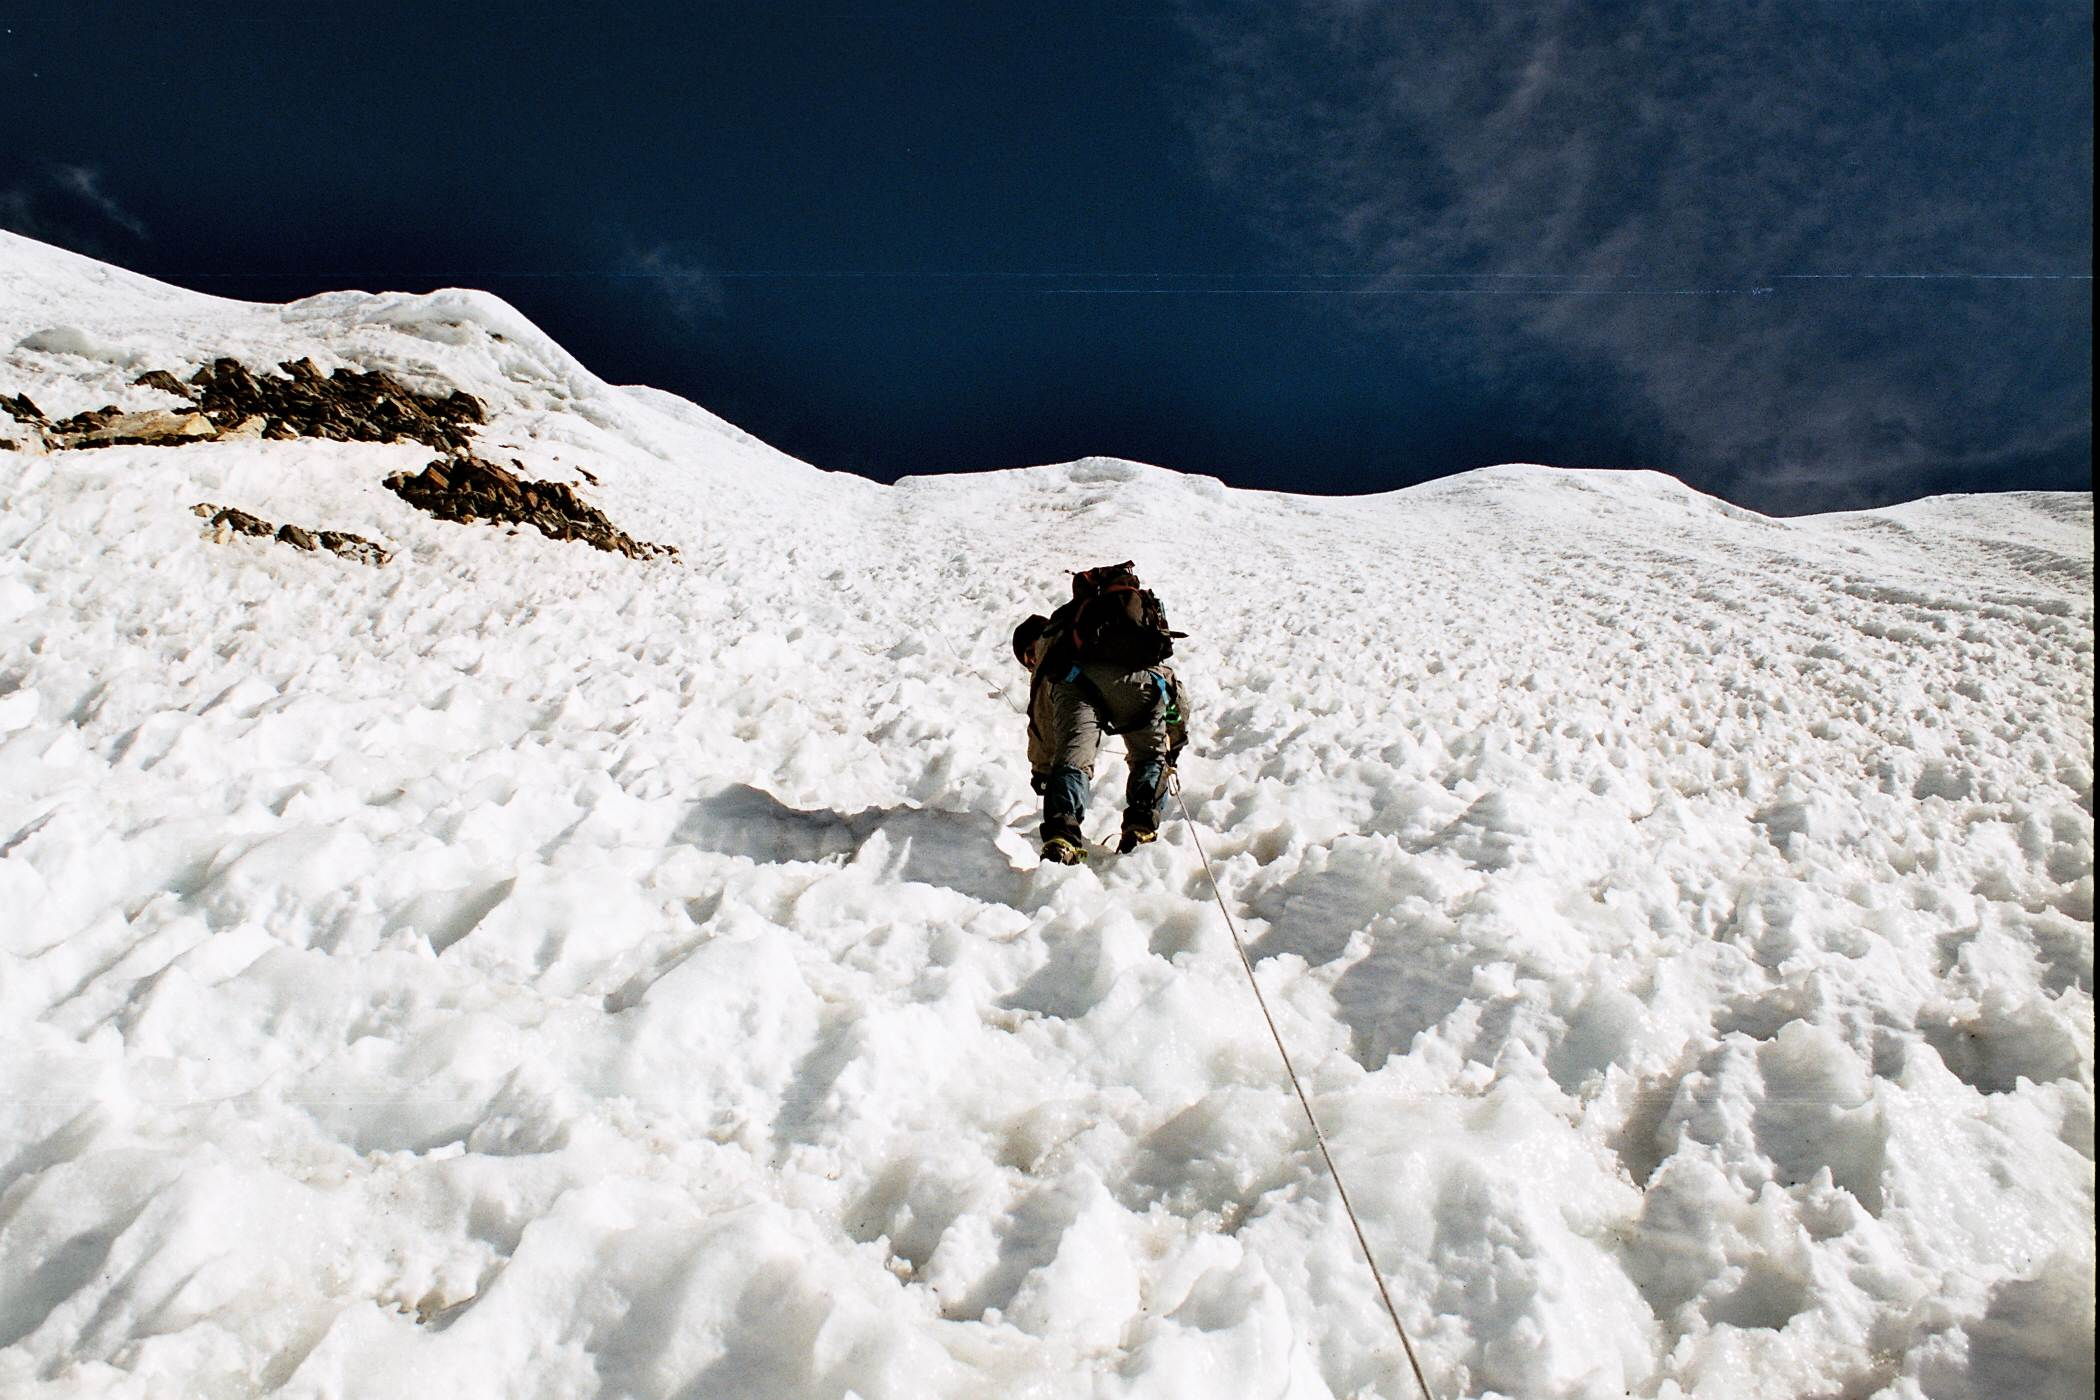 The final 350m Ice wall before reaching the summit